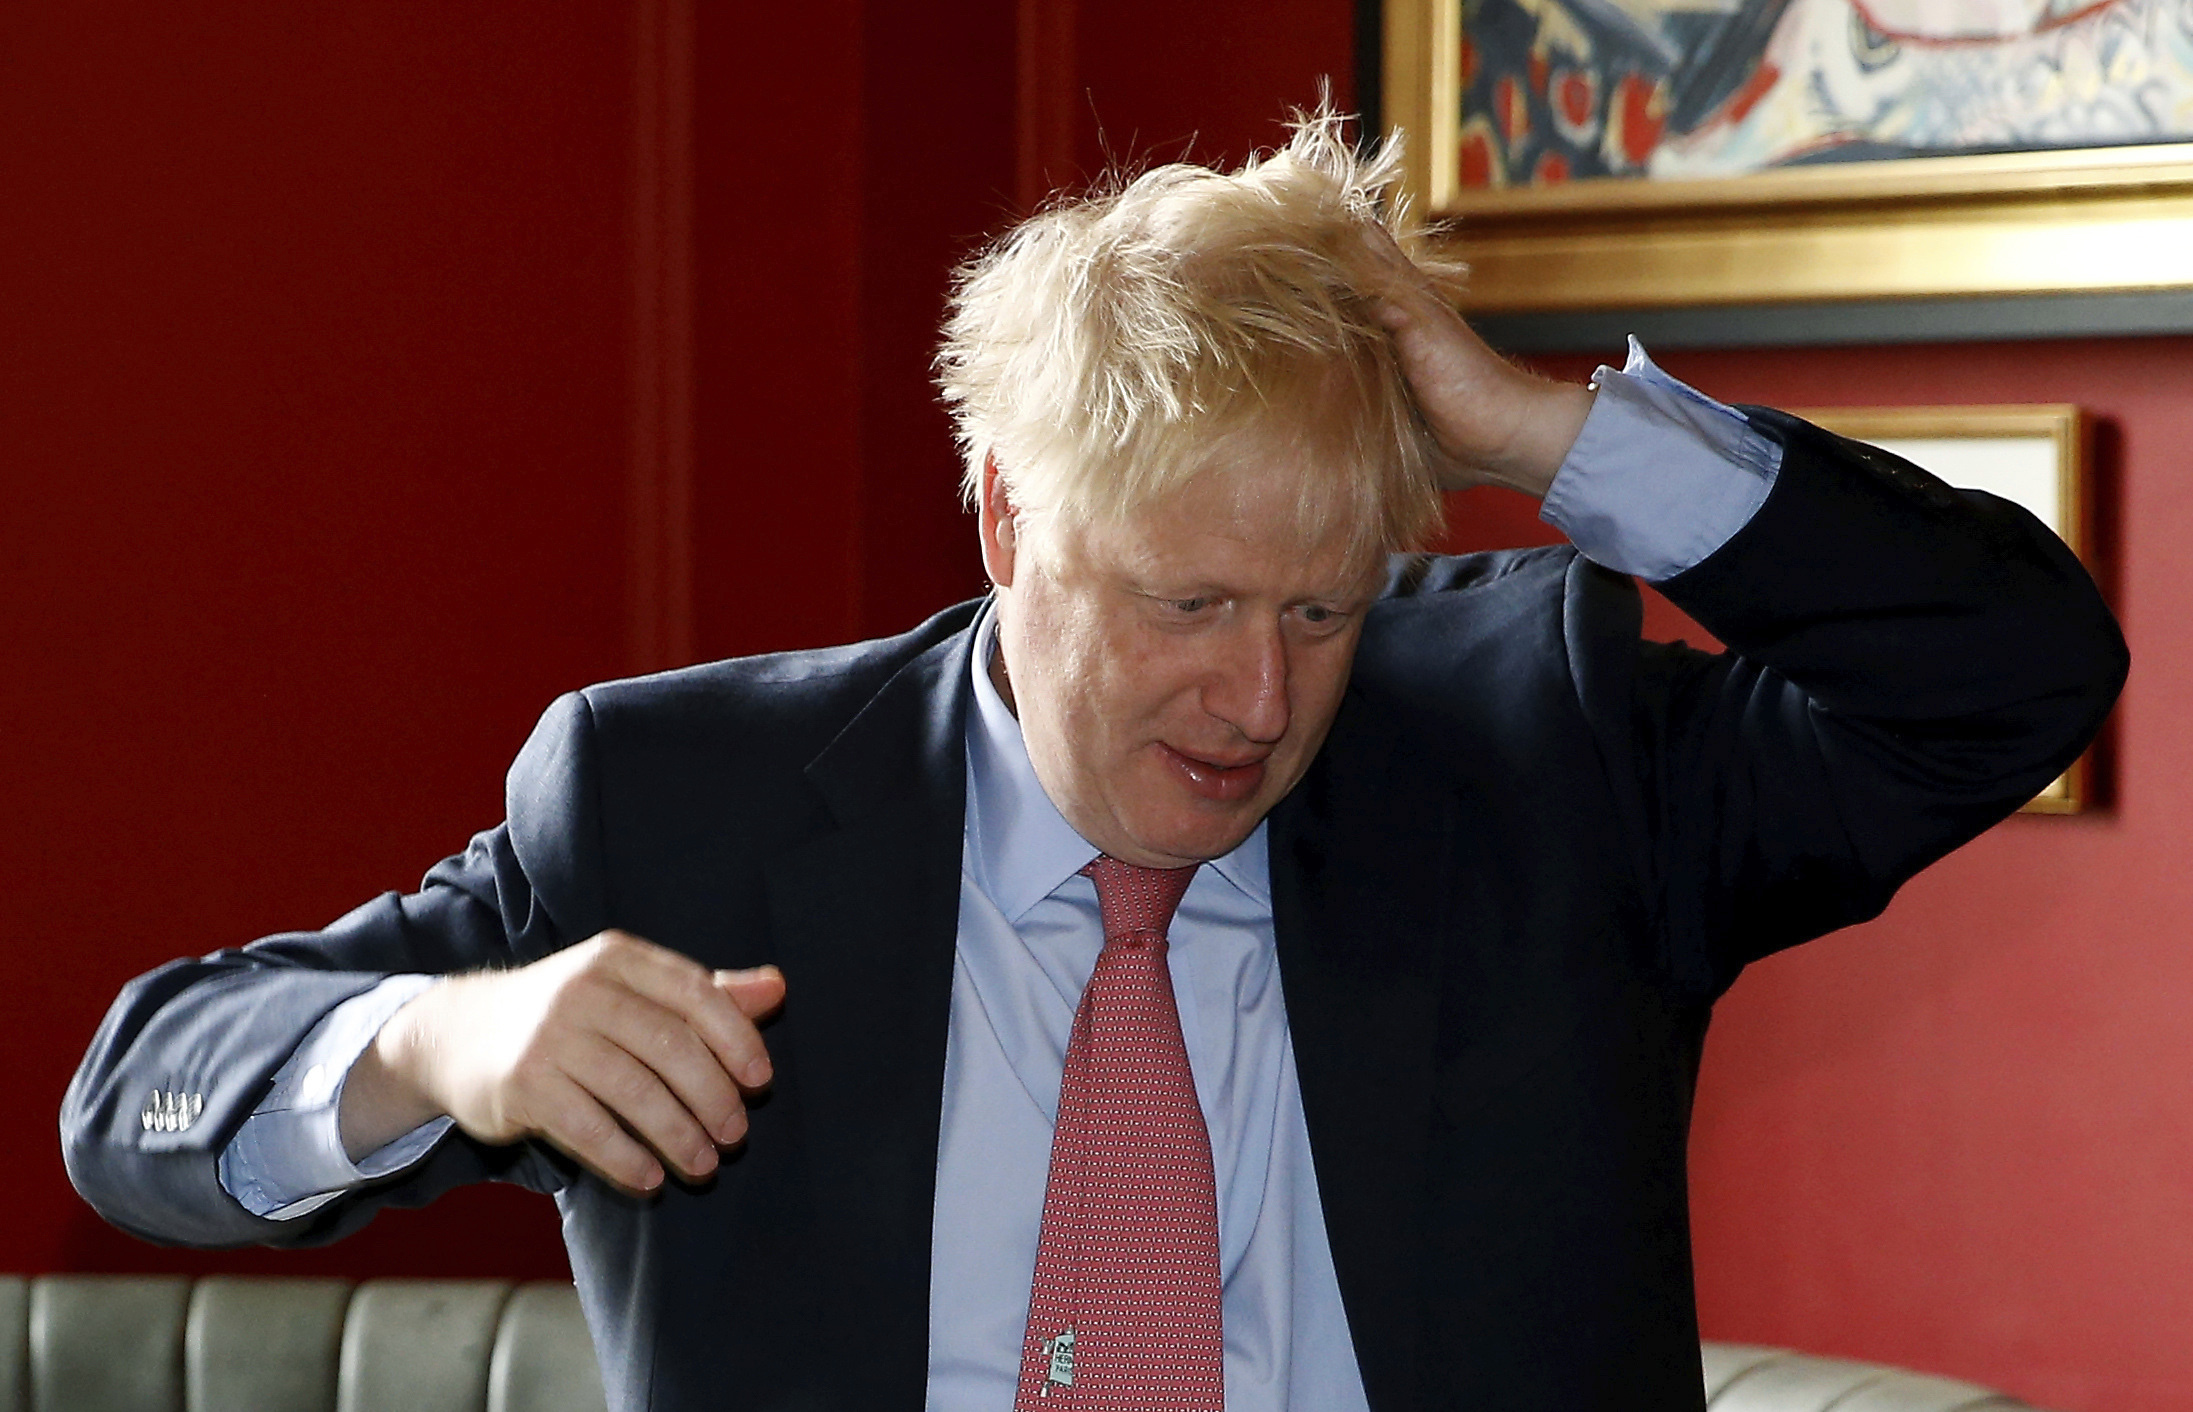 Boris Johnson says hes not to blame for ambassadors ouster